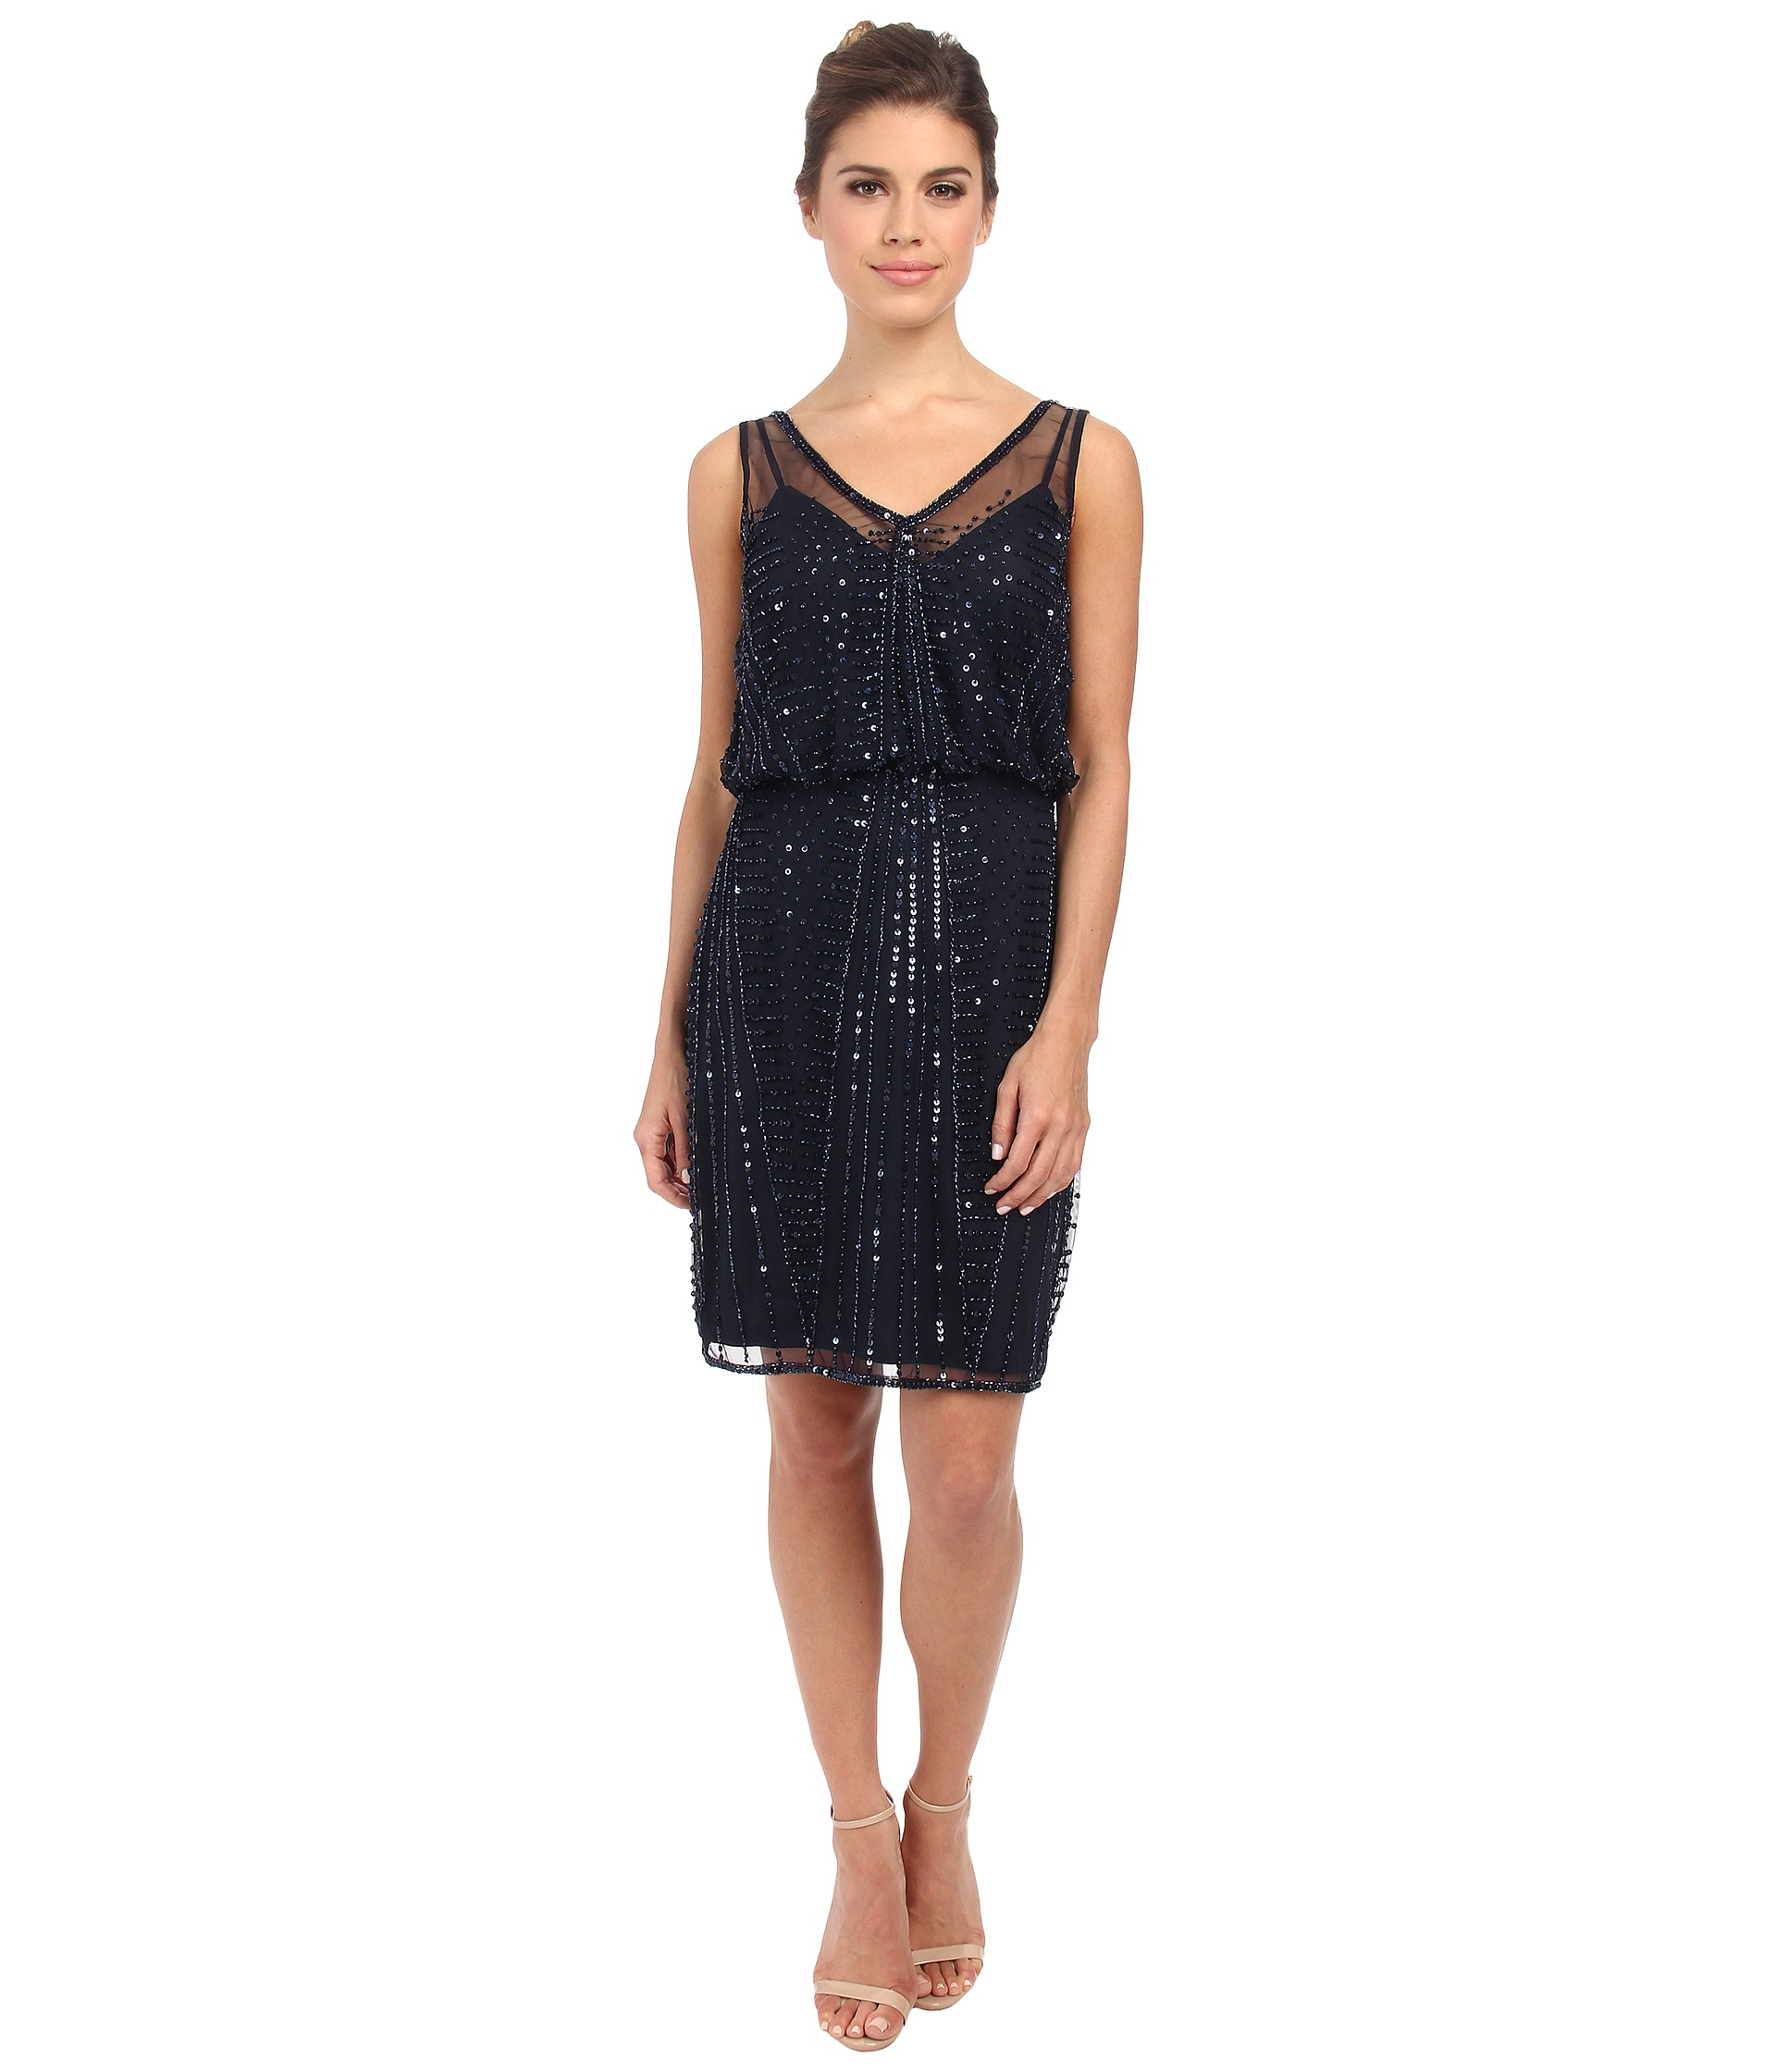 Adrianna papell Short Beaded Cocktail Dress in Blue - Lyst